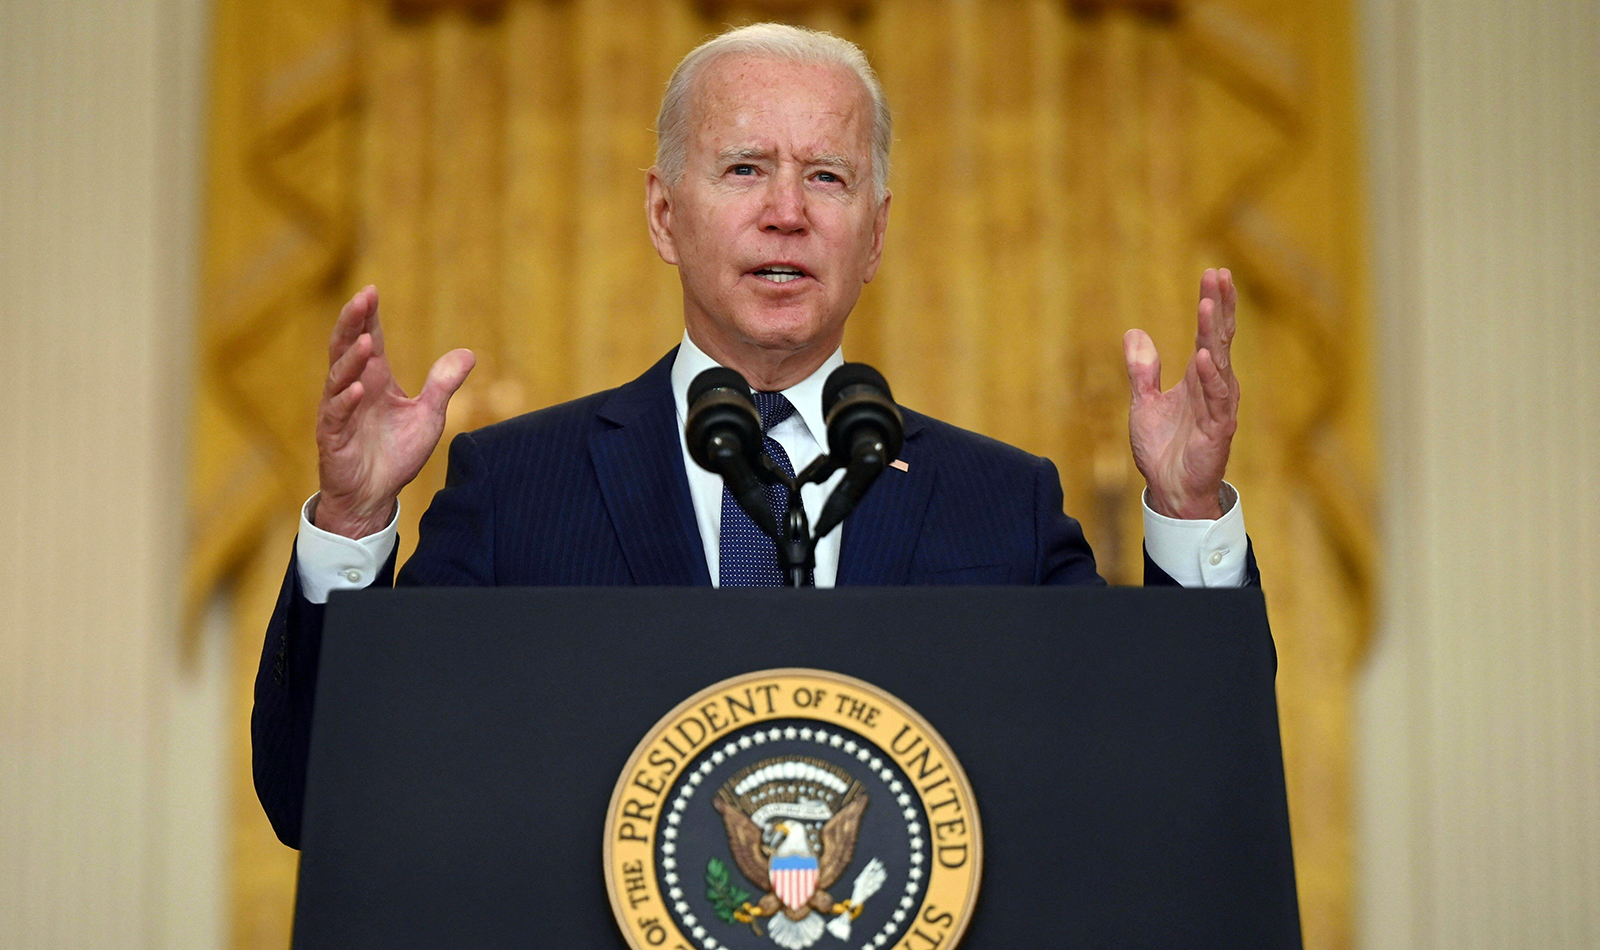 President Joe Biden delivers remarks on the terror attack at Hamid Karzai International Airport, and the US service members and Afghan victims killed and wounded, in the East Room of the White House in Washington on August 26.